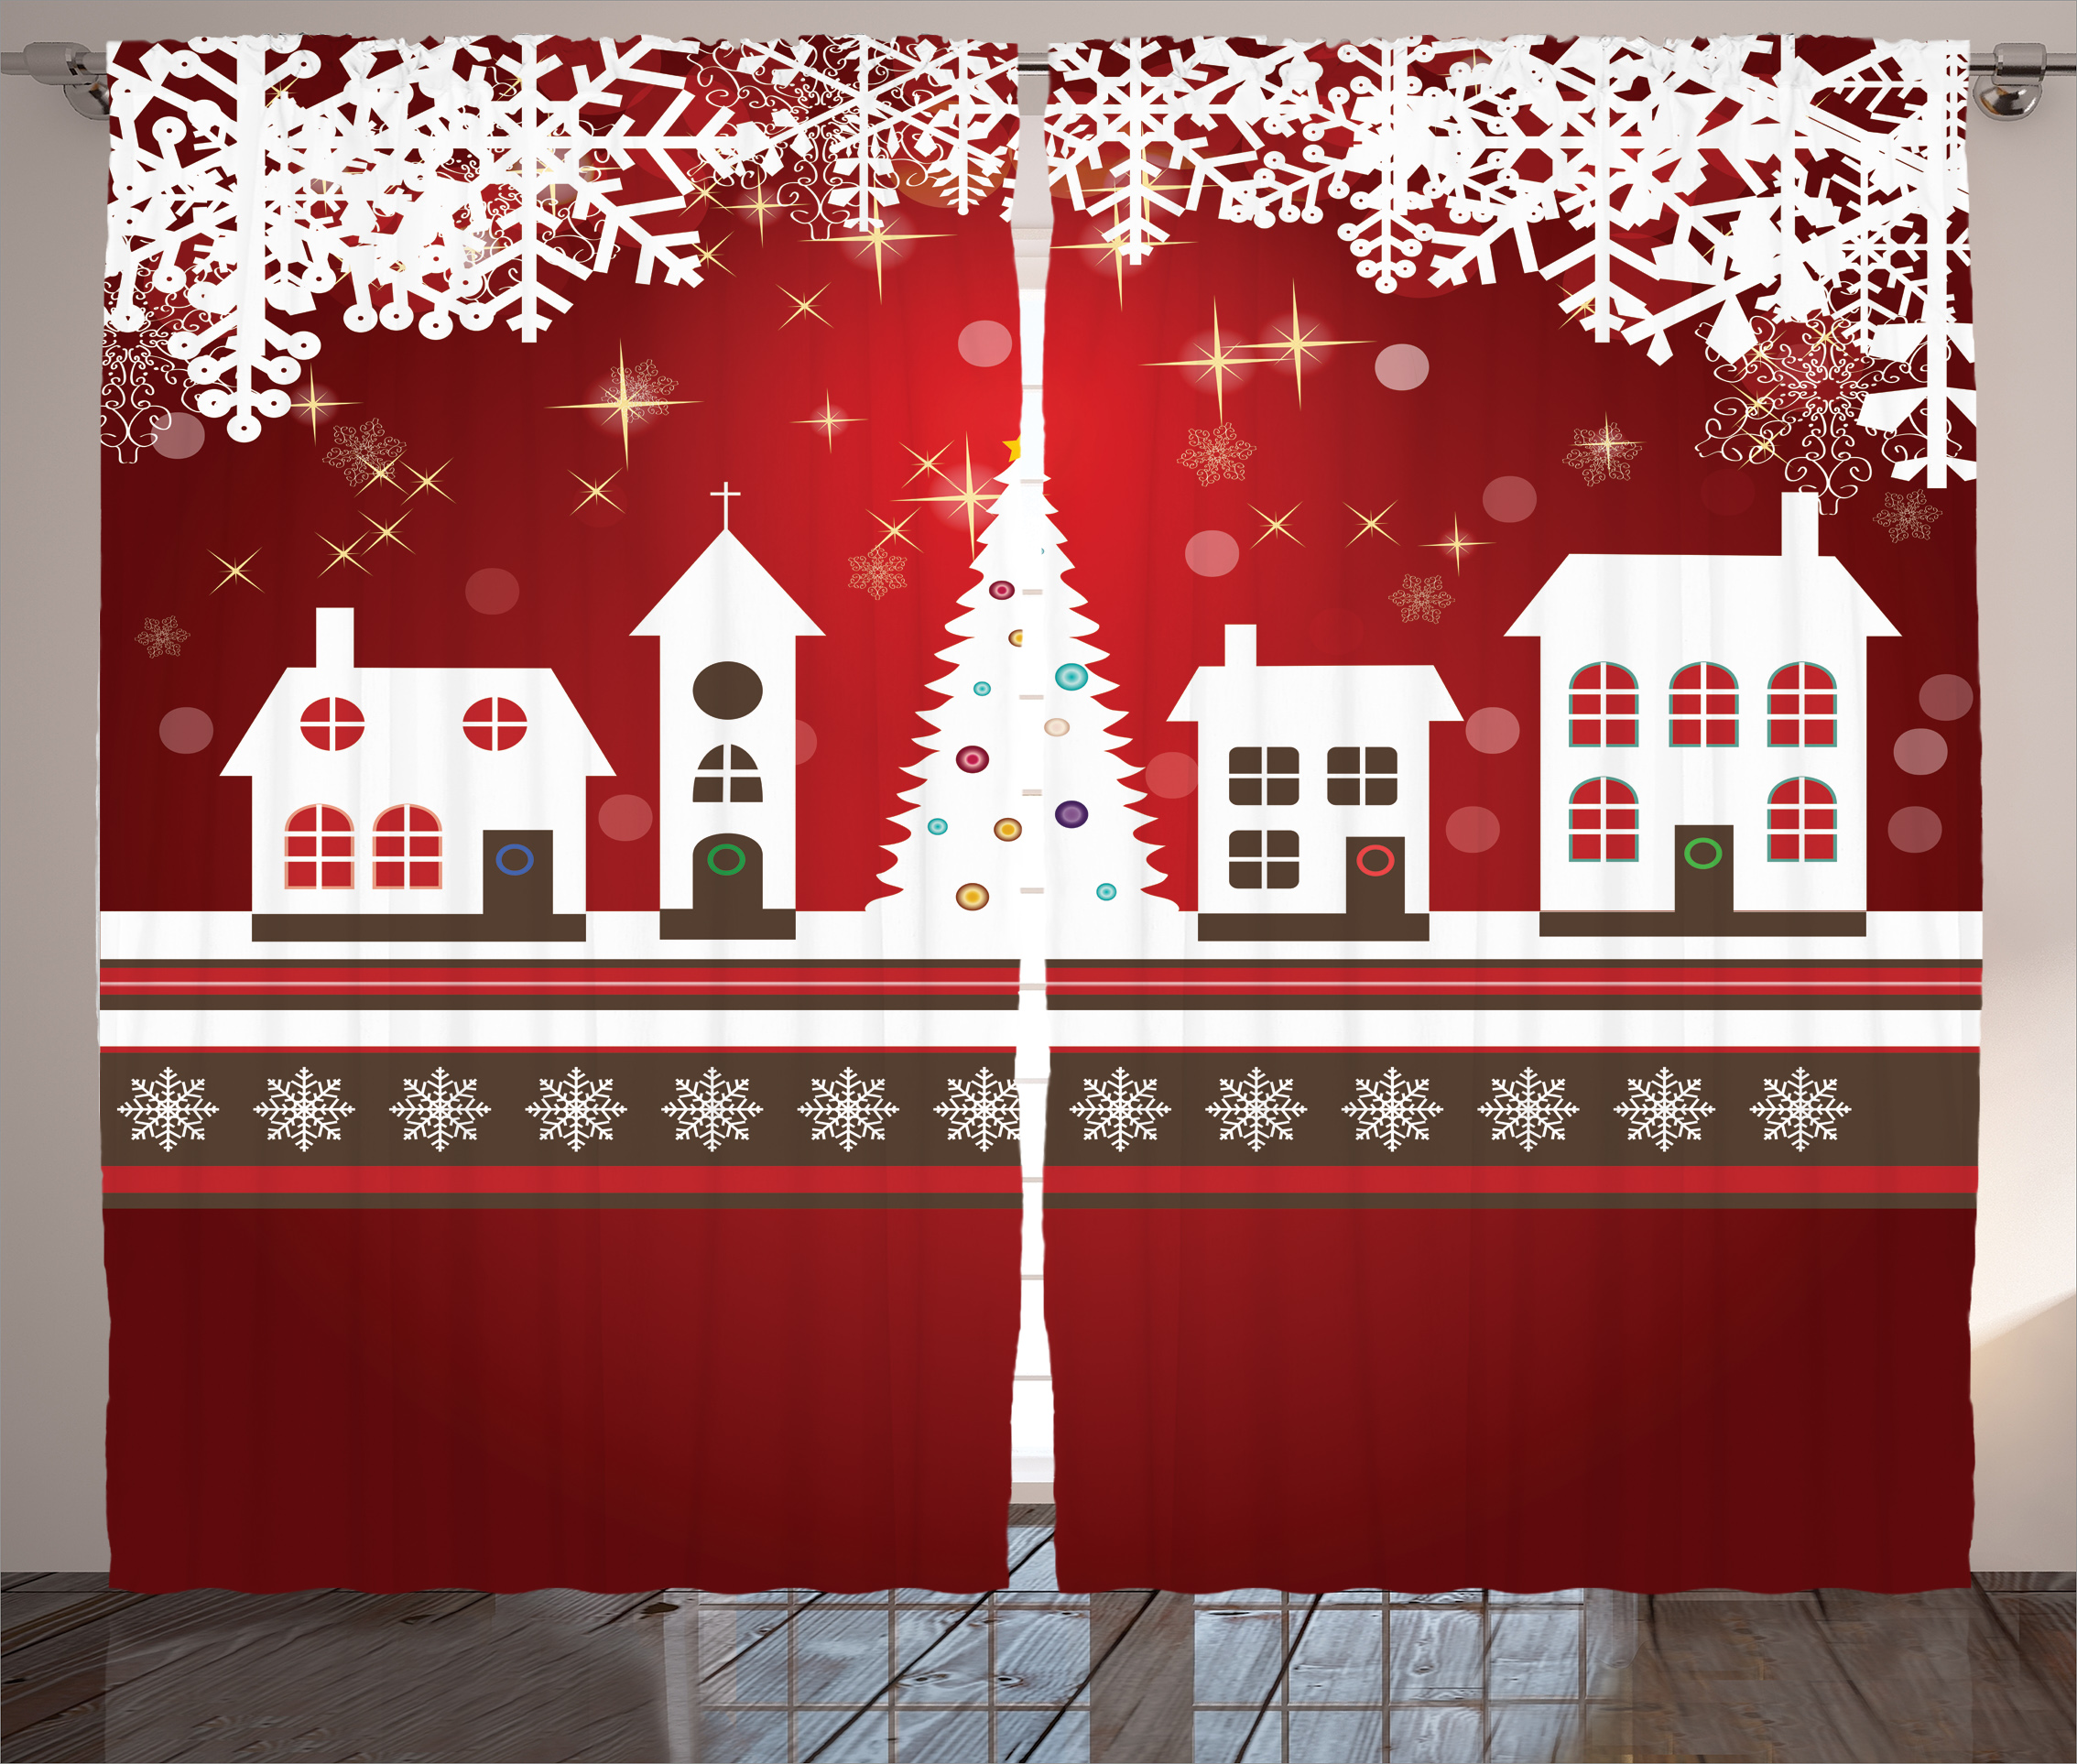 Christmas Decorations Curtains 2 Panels Set, Winter Holidays Themed Gingerbread Houses Xmas Tree Lights and Snowflakes... by Kozmos